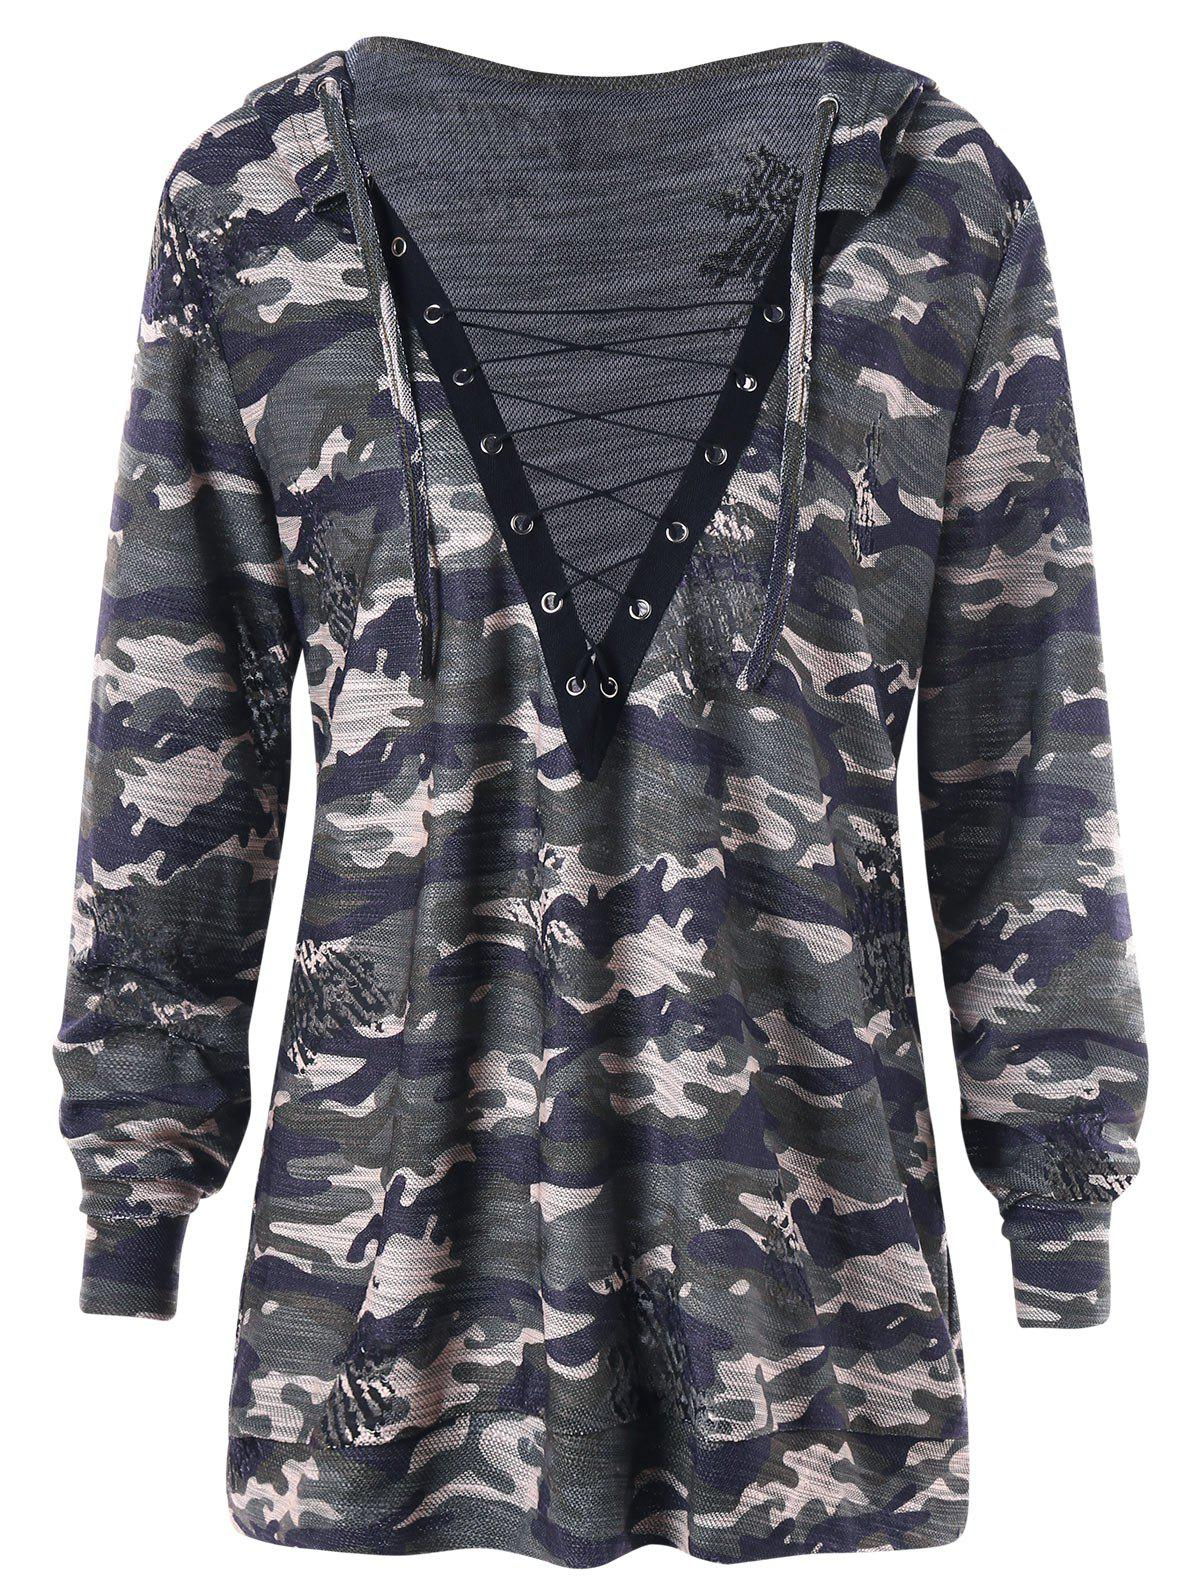 Plus Size Camouflage Lace Up Plunging HoodieWOMEN<br><br>Size: 2XL; Color: CAMOUFLAGE; Material: Polyester,Spandex; Shirt Length: Long; Sleeve Length: Full; Style: Streetwear; Pattern Style: Others; Season: Fall,Spring; Weight: 0.3700kg; Package Contents: 1 x Hoodie;